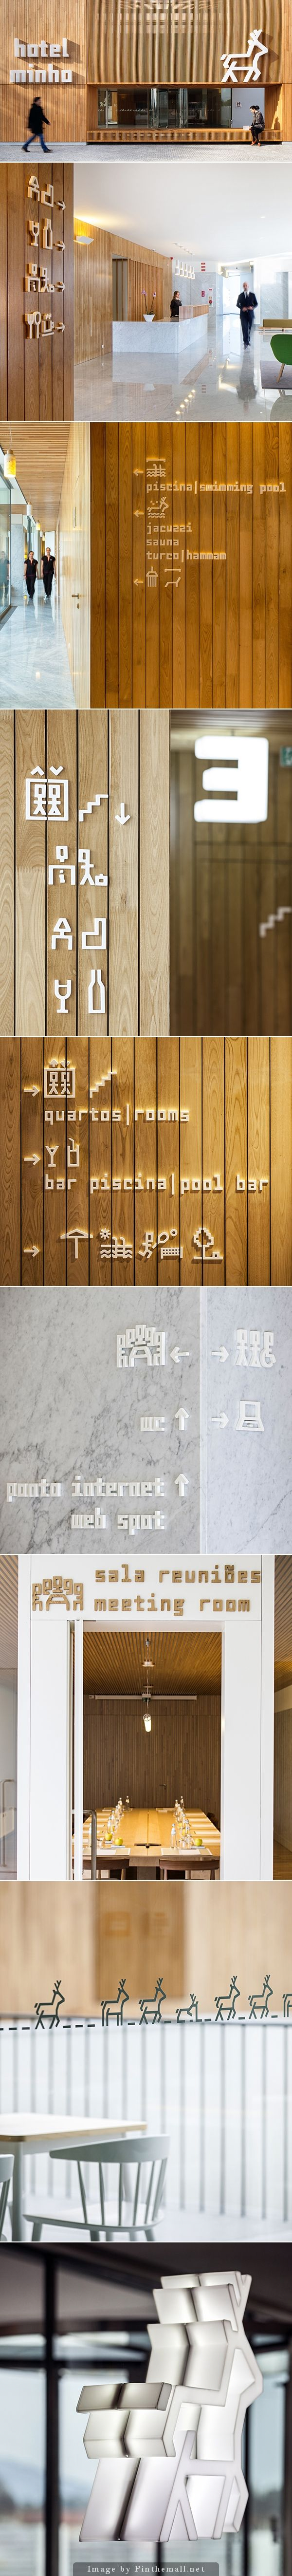 Hotel Minho, Environmental Graphic Design, Signage Sistems, Interior wayfinding…